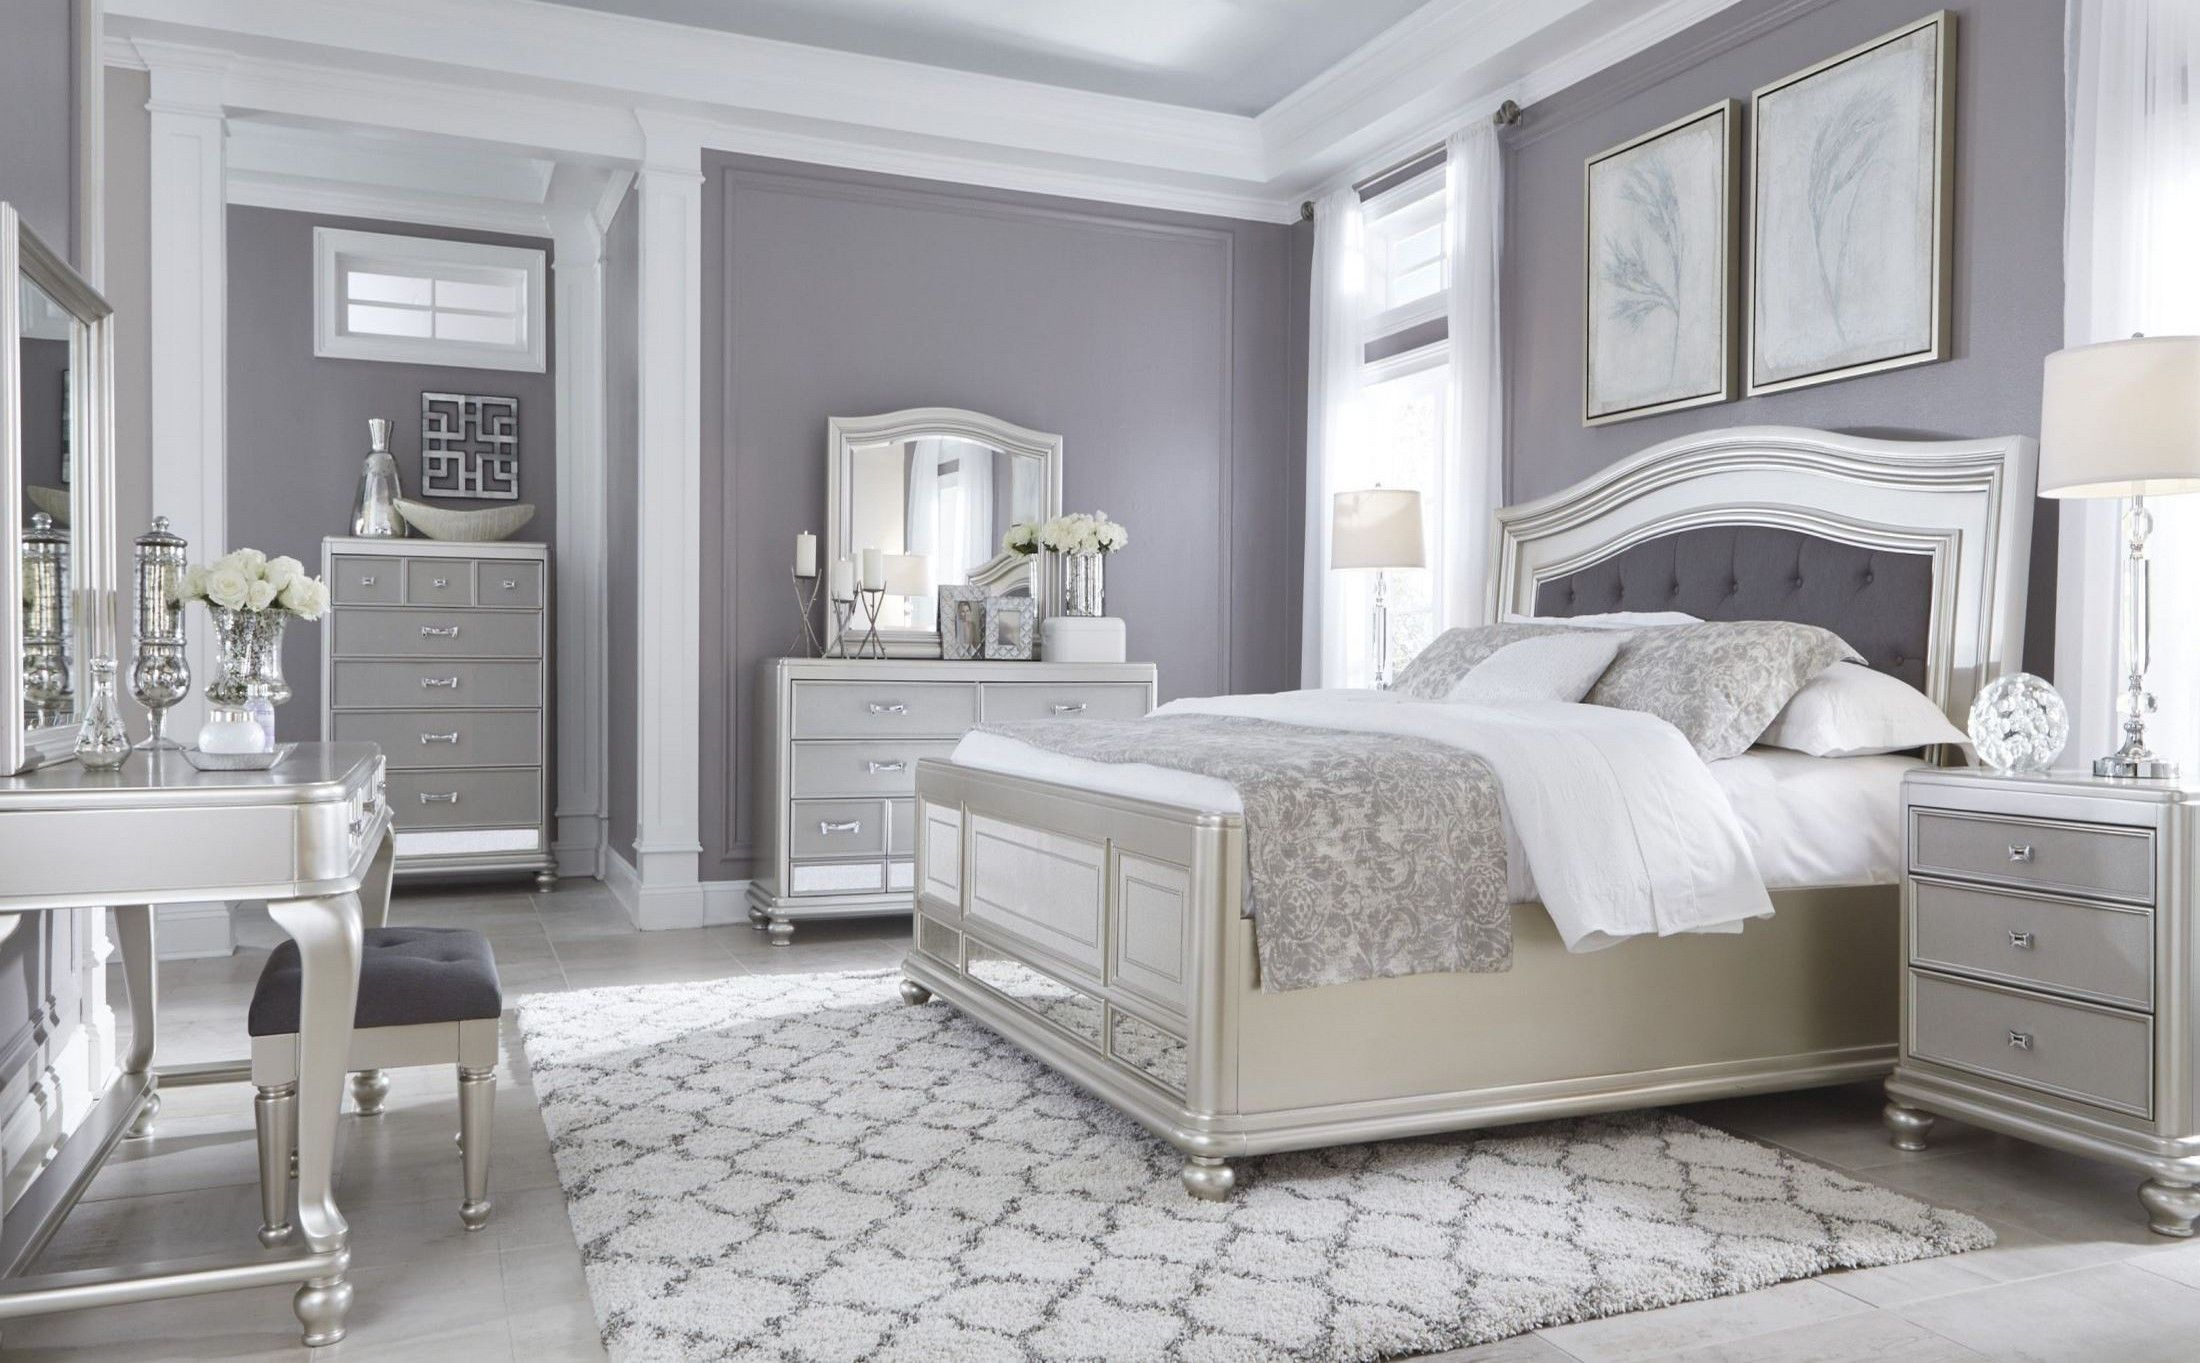 Pin By Cherie Graves On Master Bedroom Ideas Silver